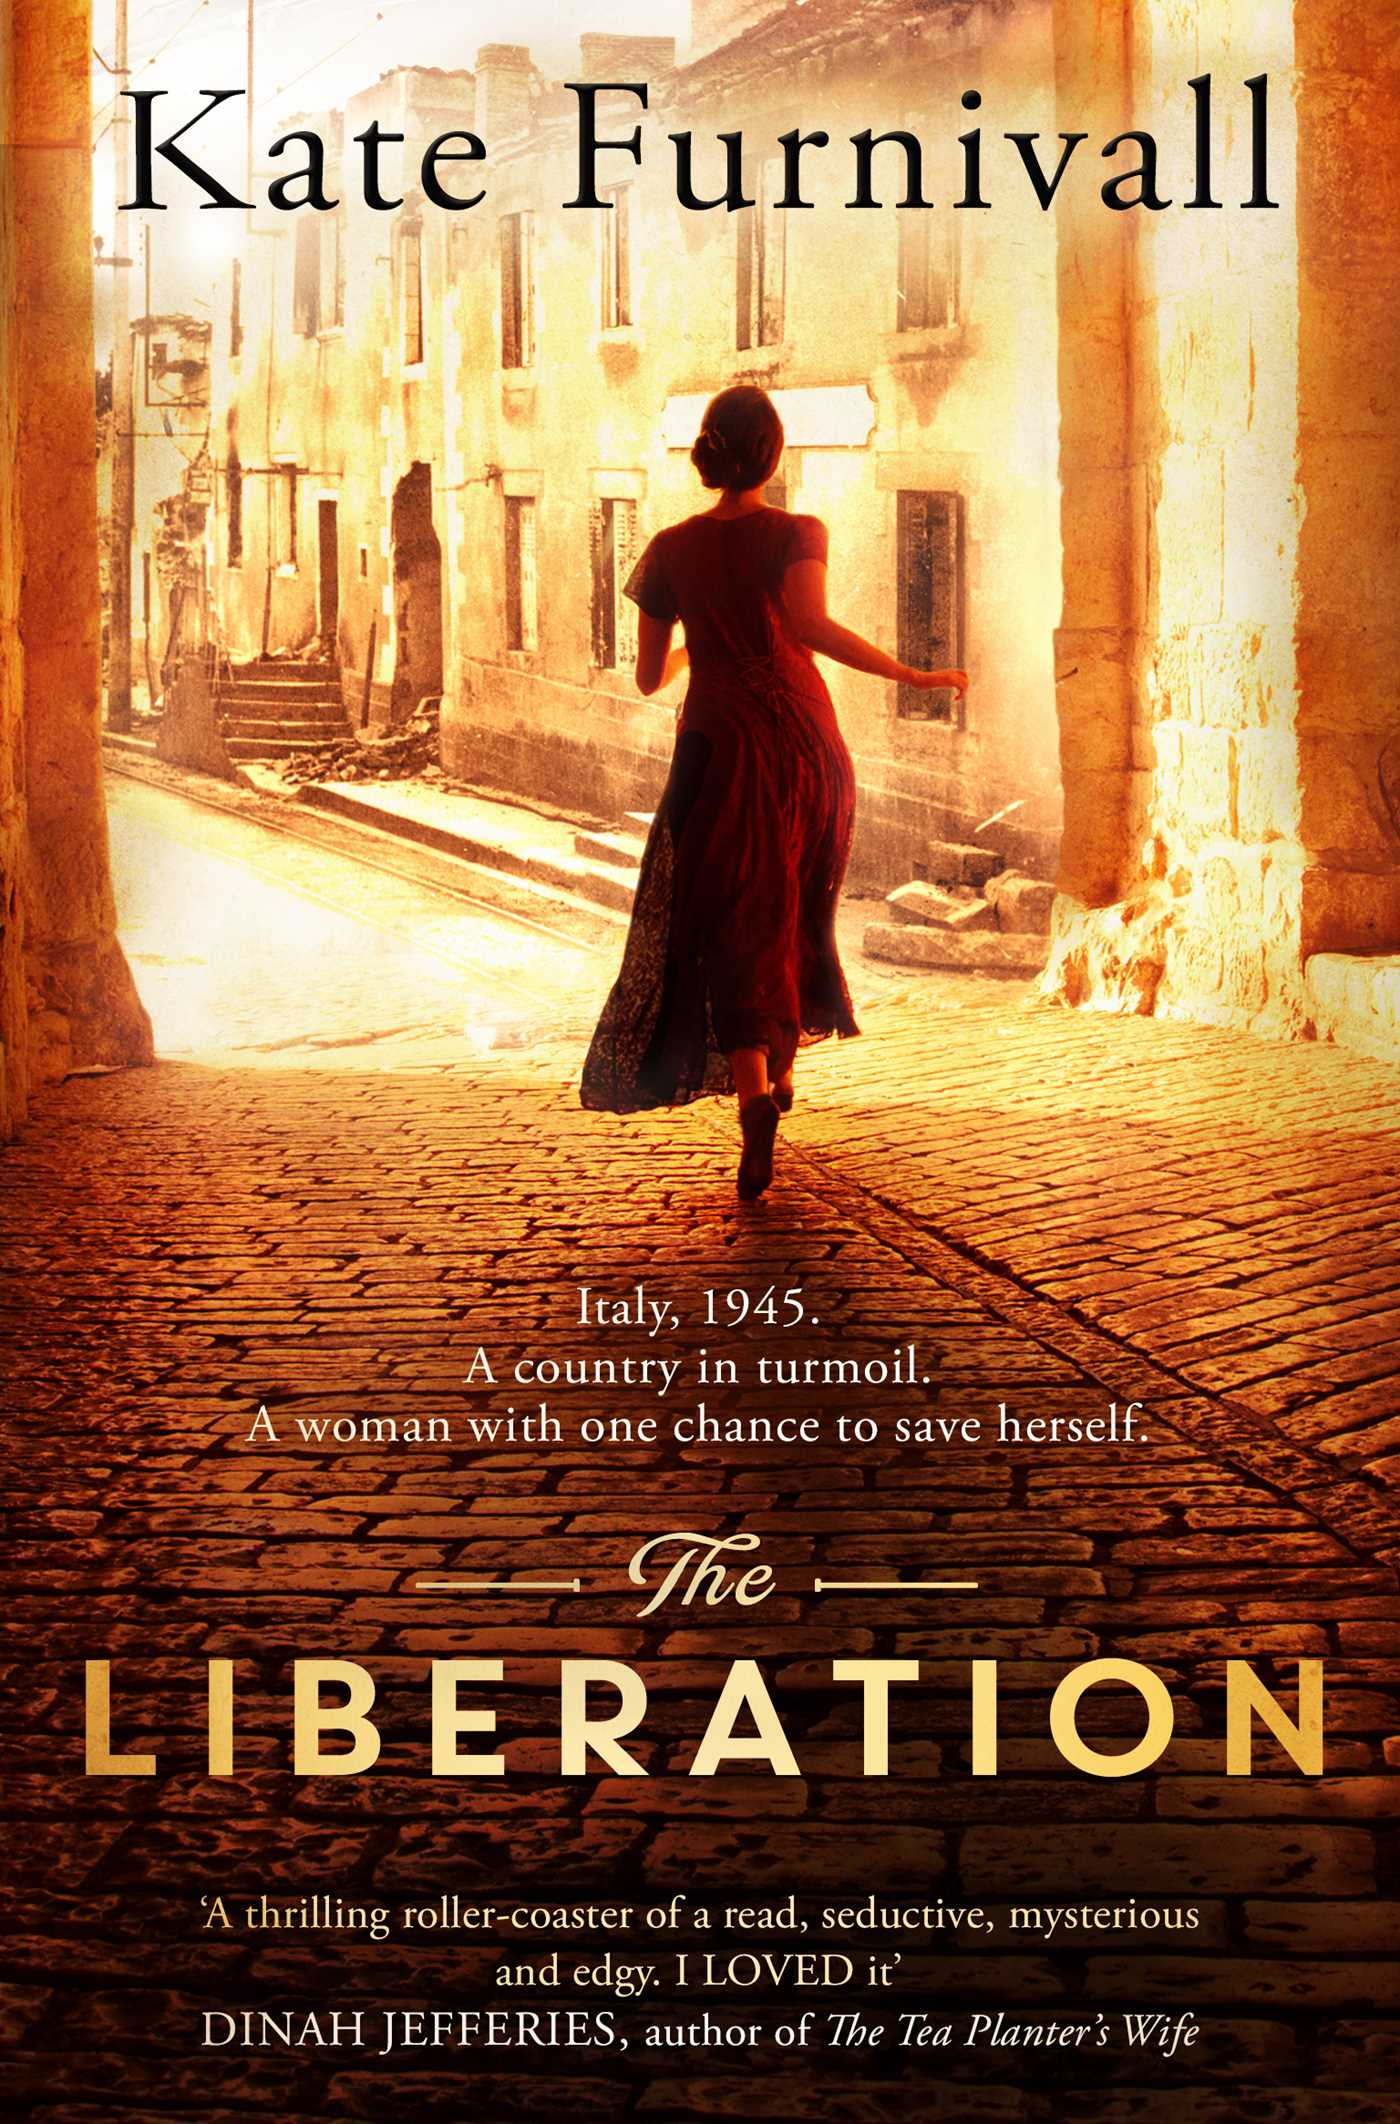 The liberation 9781471155574 hr